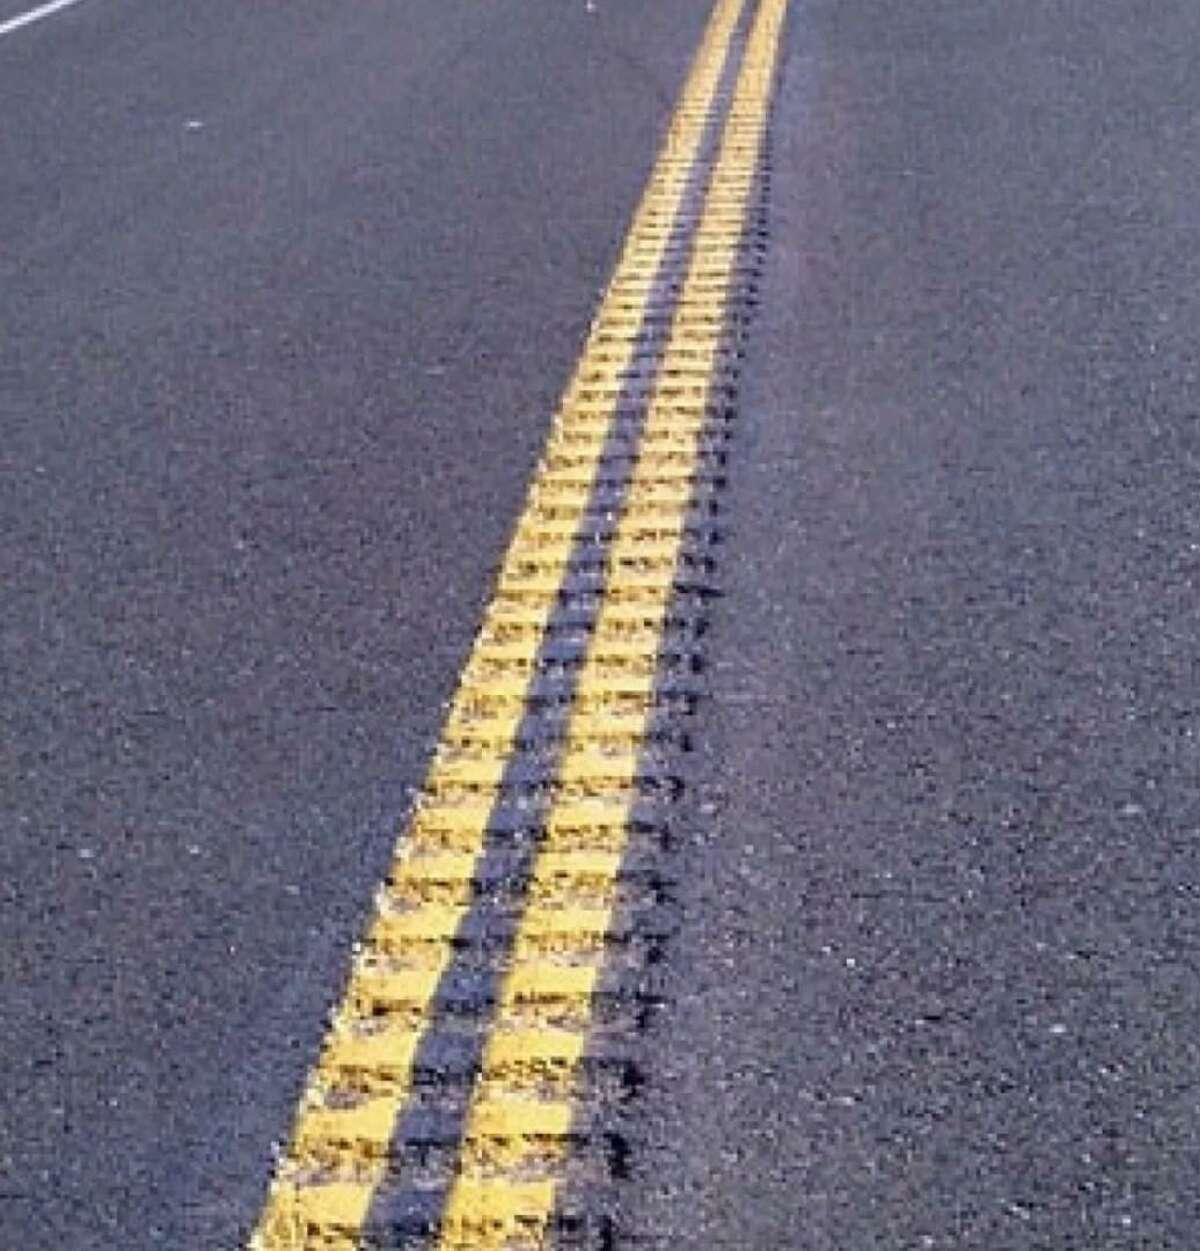 The state Department of Transportation will be installing centerline rumble strips along 3.91 miles Route 110 in Stratford and Shelton, also known as River Road. The overnight will occur on Thursday, Sept. 3, and Tuesday, Sept. 8.